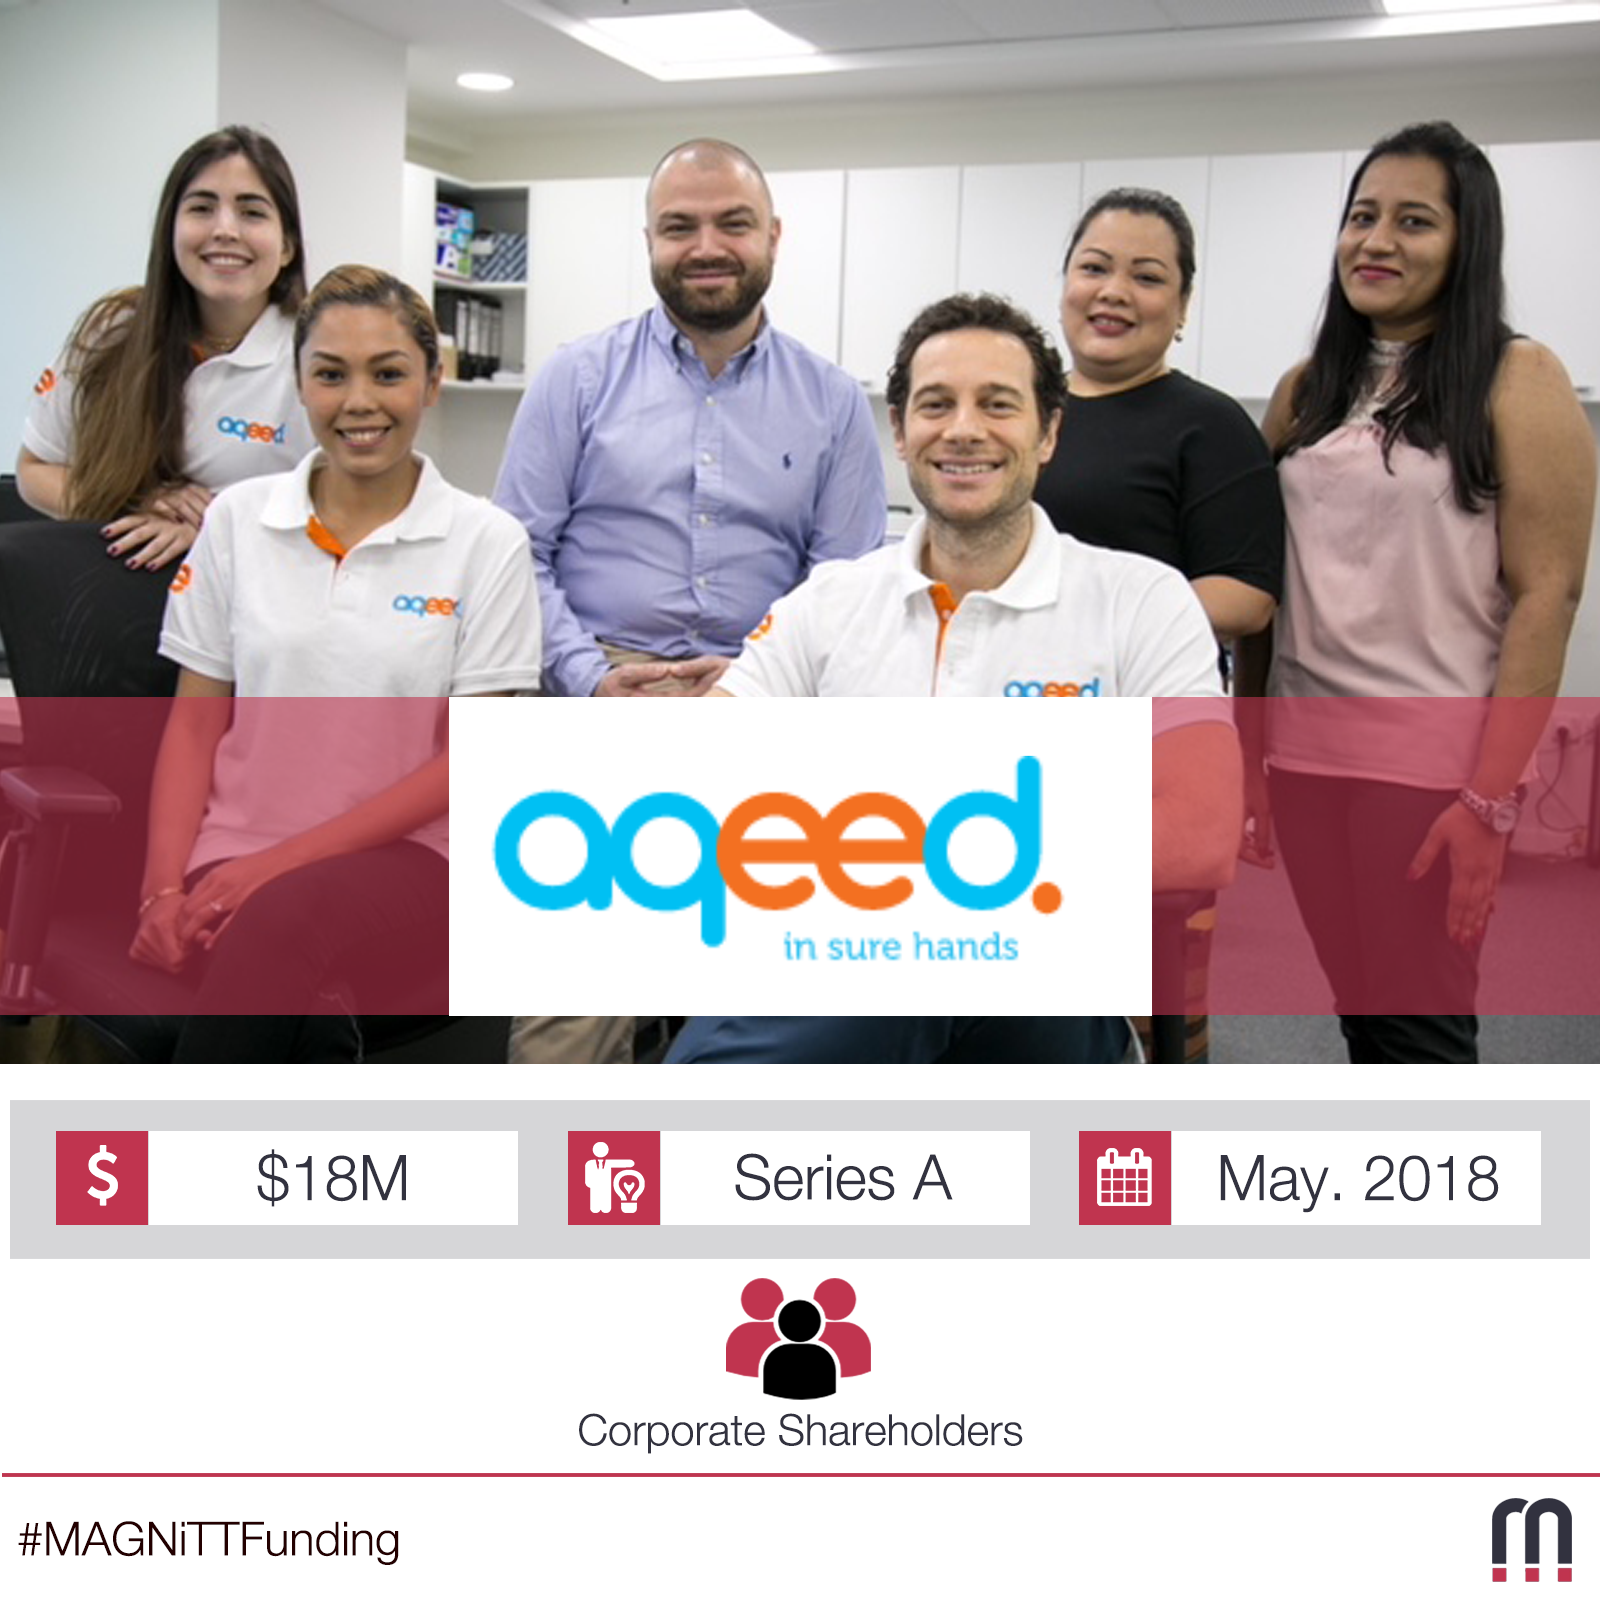 Aqeed.com Founders share Insights on their recent Series A Funding Round